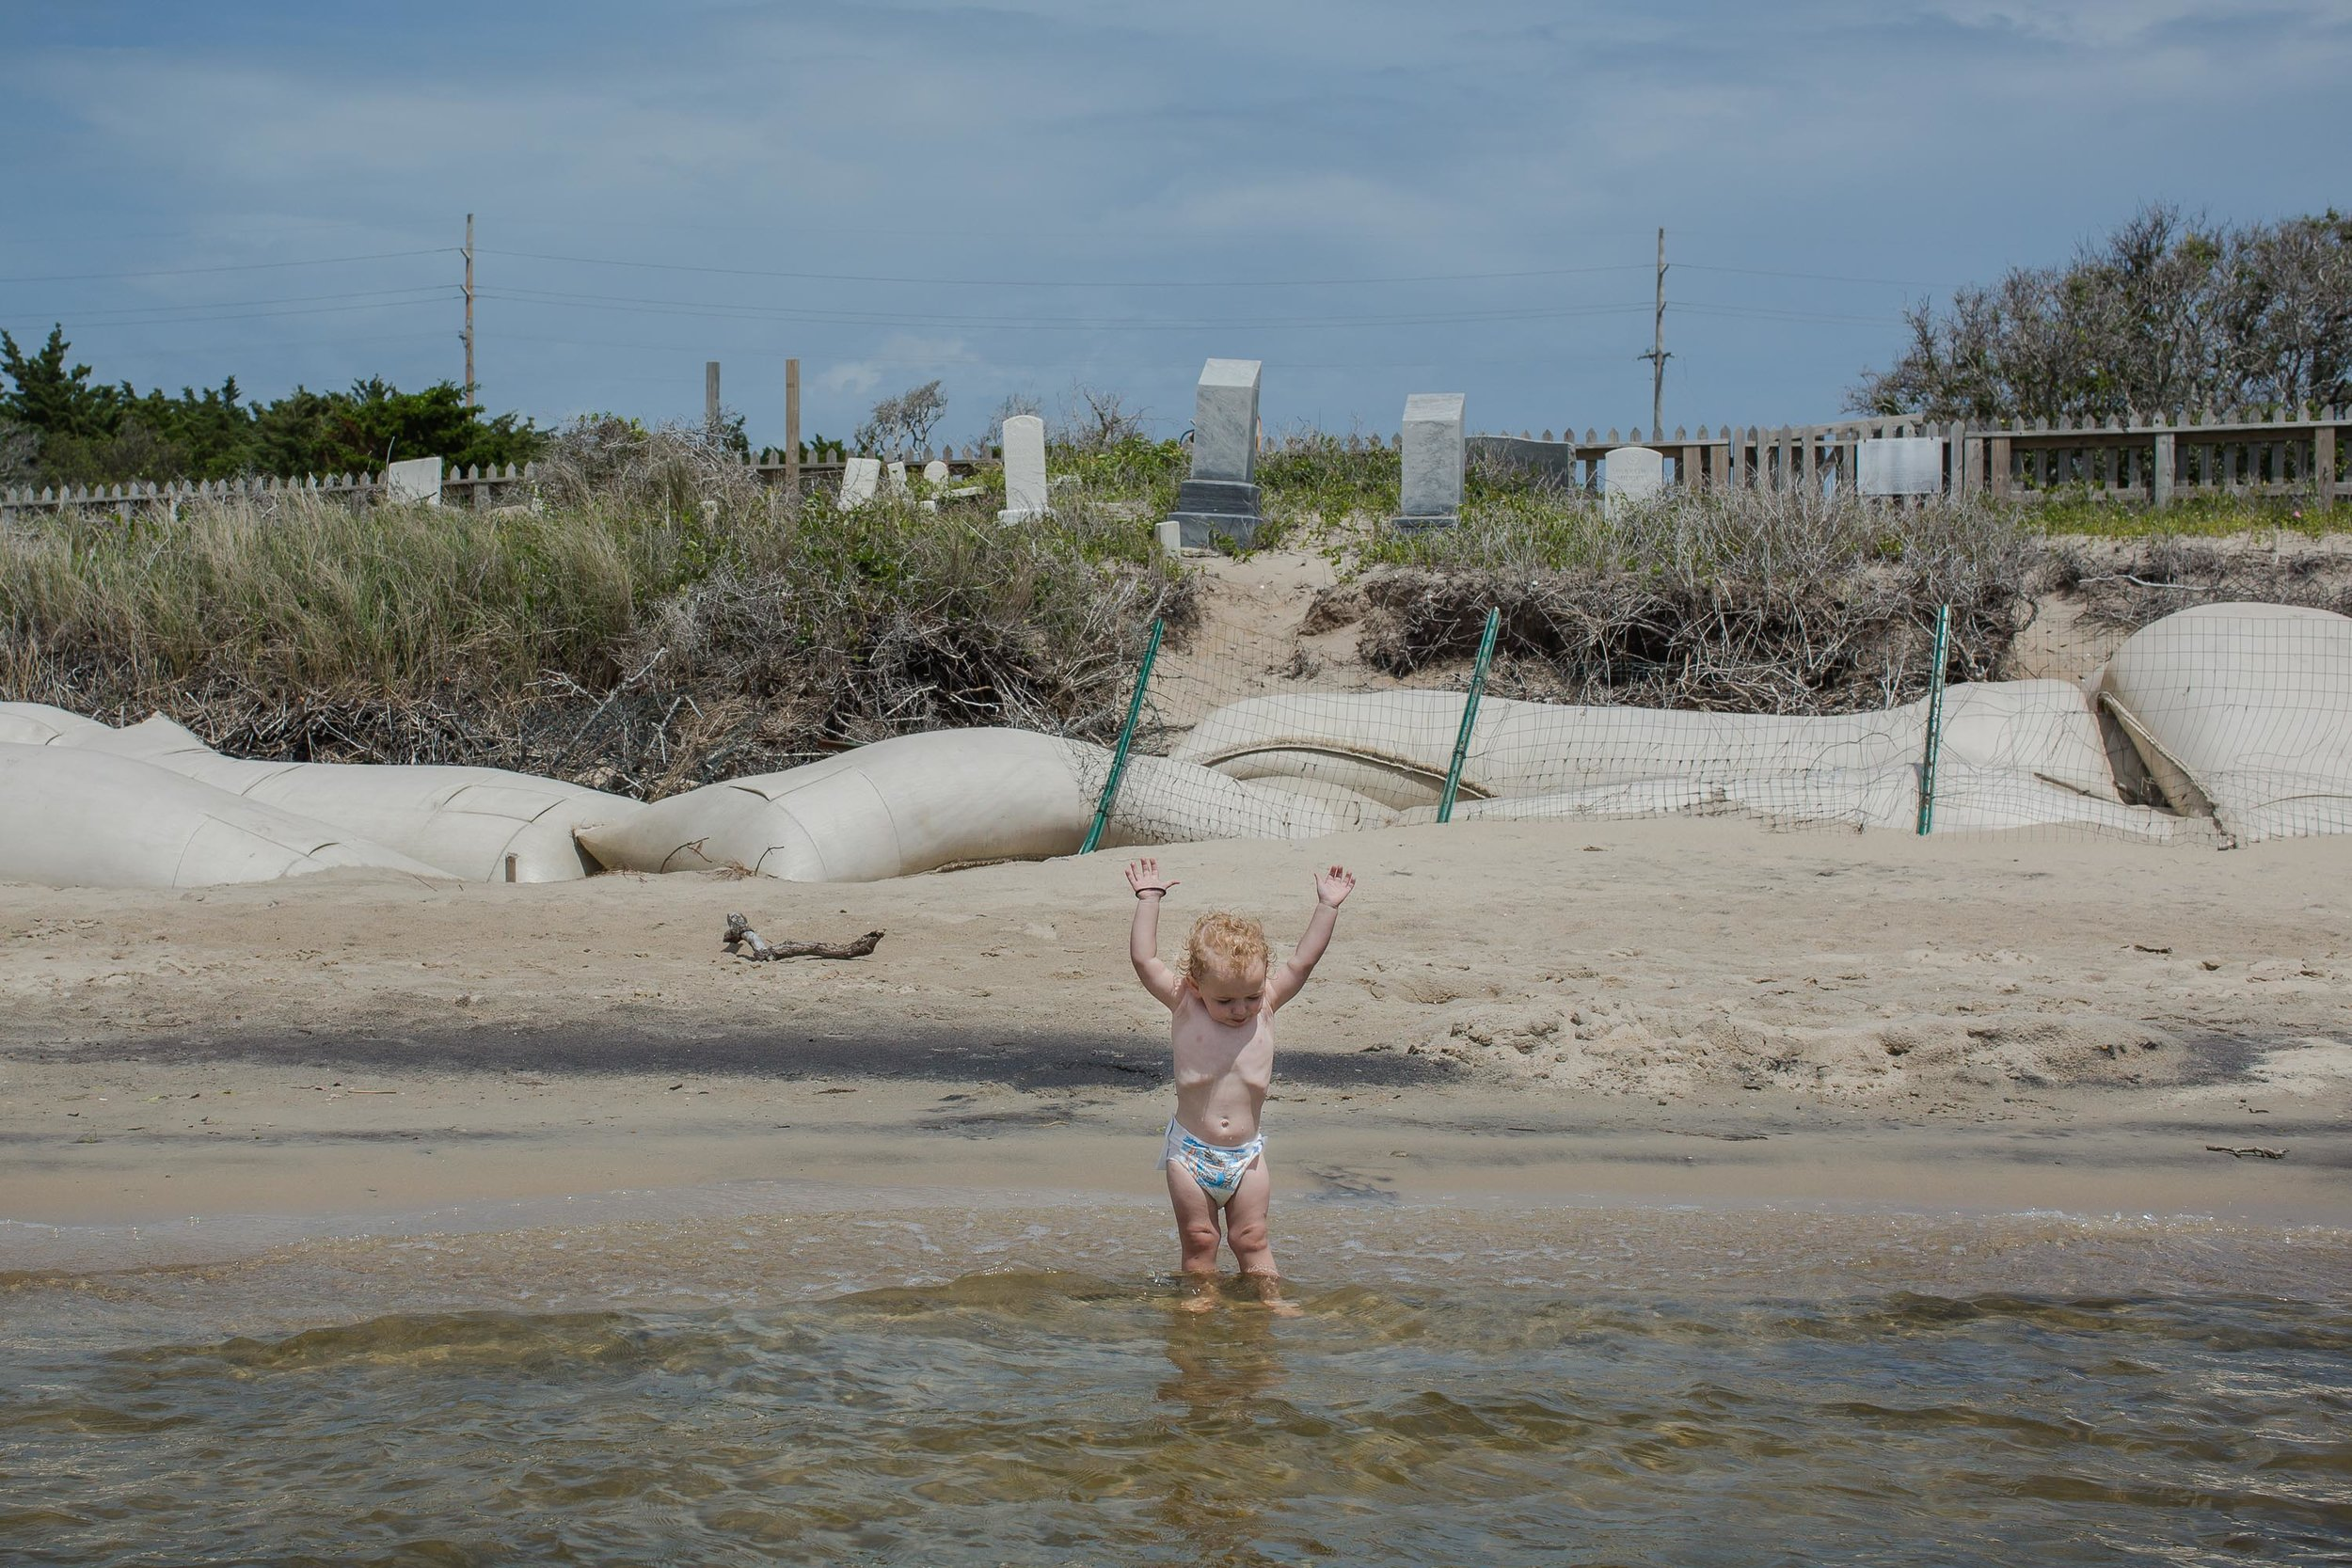 Kaine, 2, plays in the sound near sandbags installed to break waves during storms and slow erosion in the cemetery. May 2018.